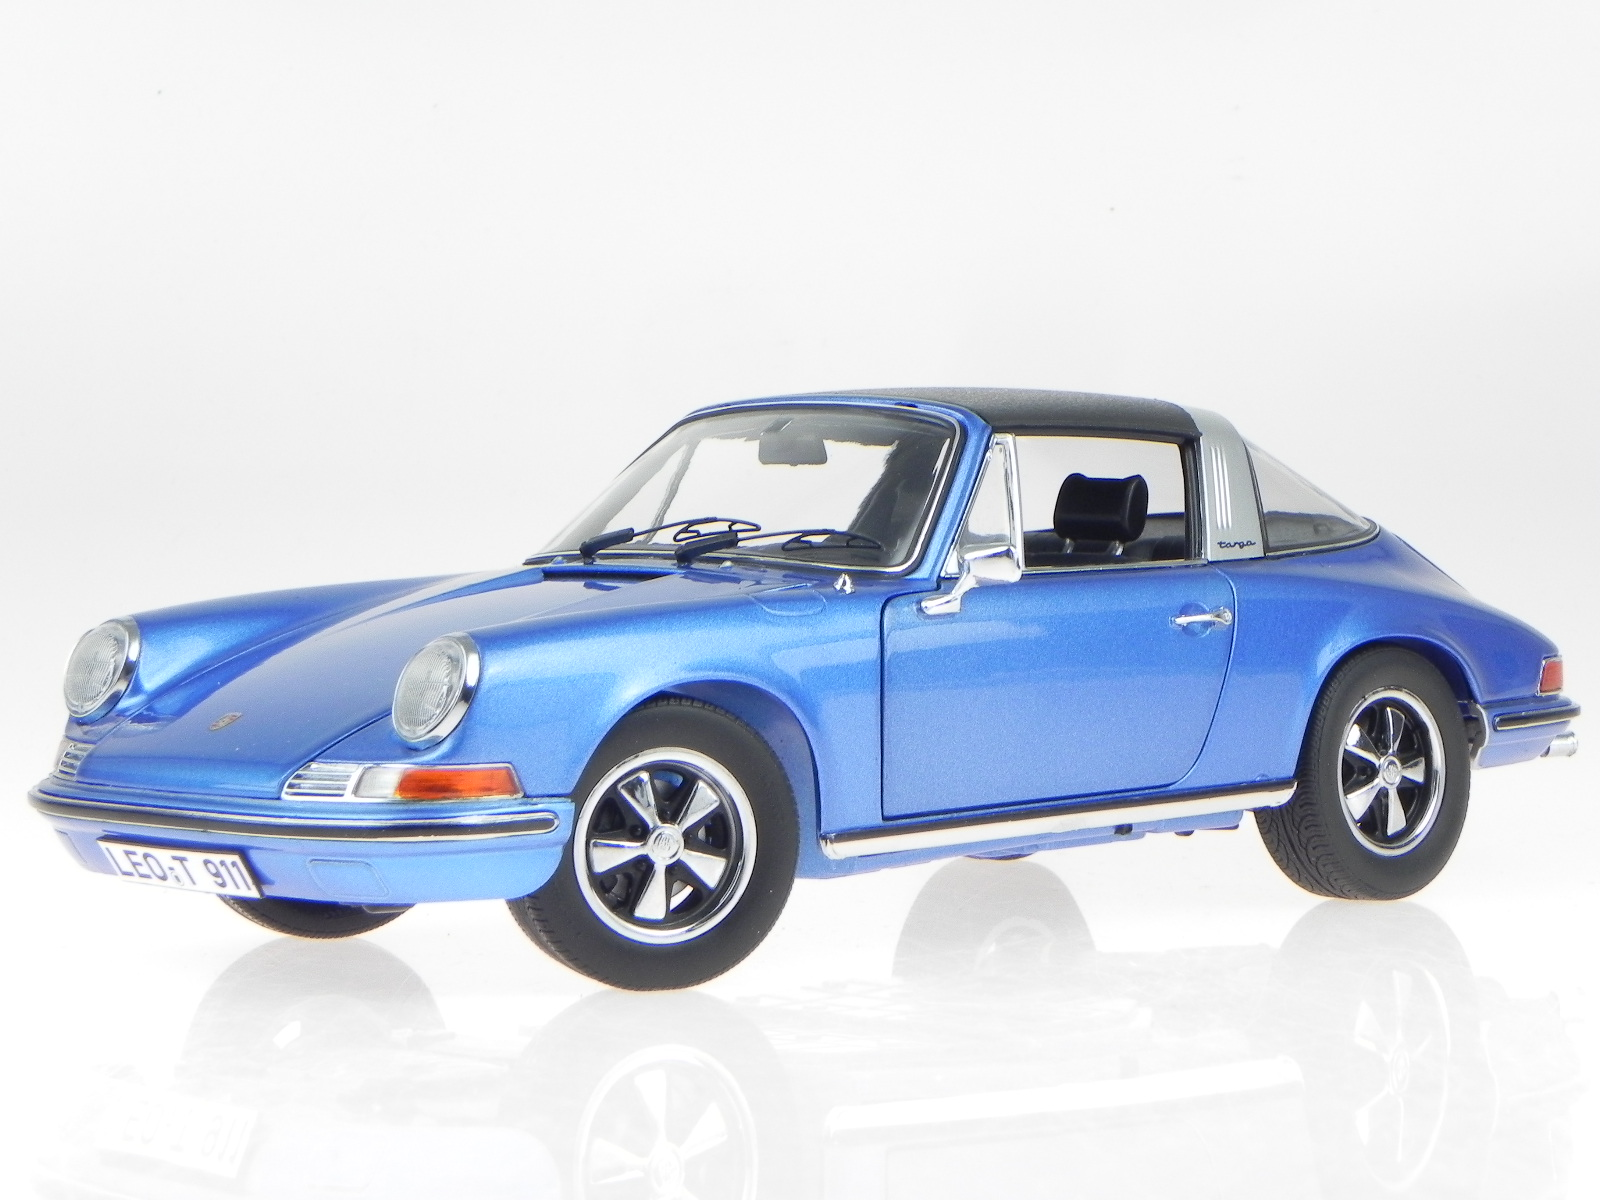 porsche 911 s targa 1973 blau metallic modellauto 354. Black Bedroom Furniture Sets. Home Design Ideas